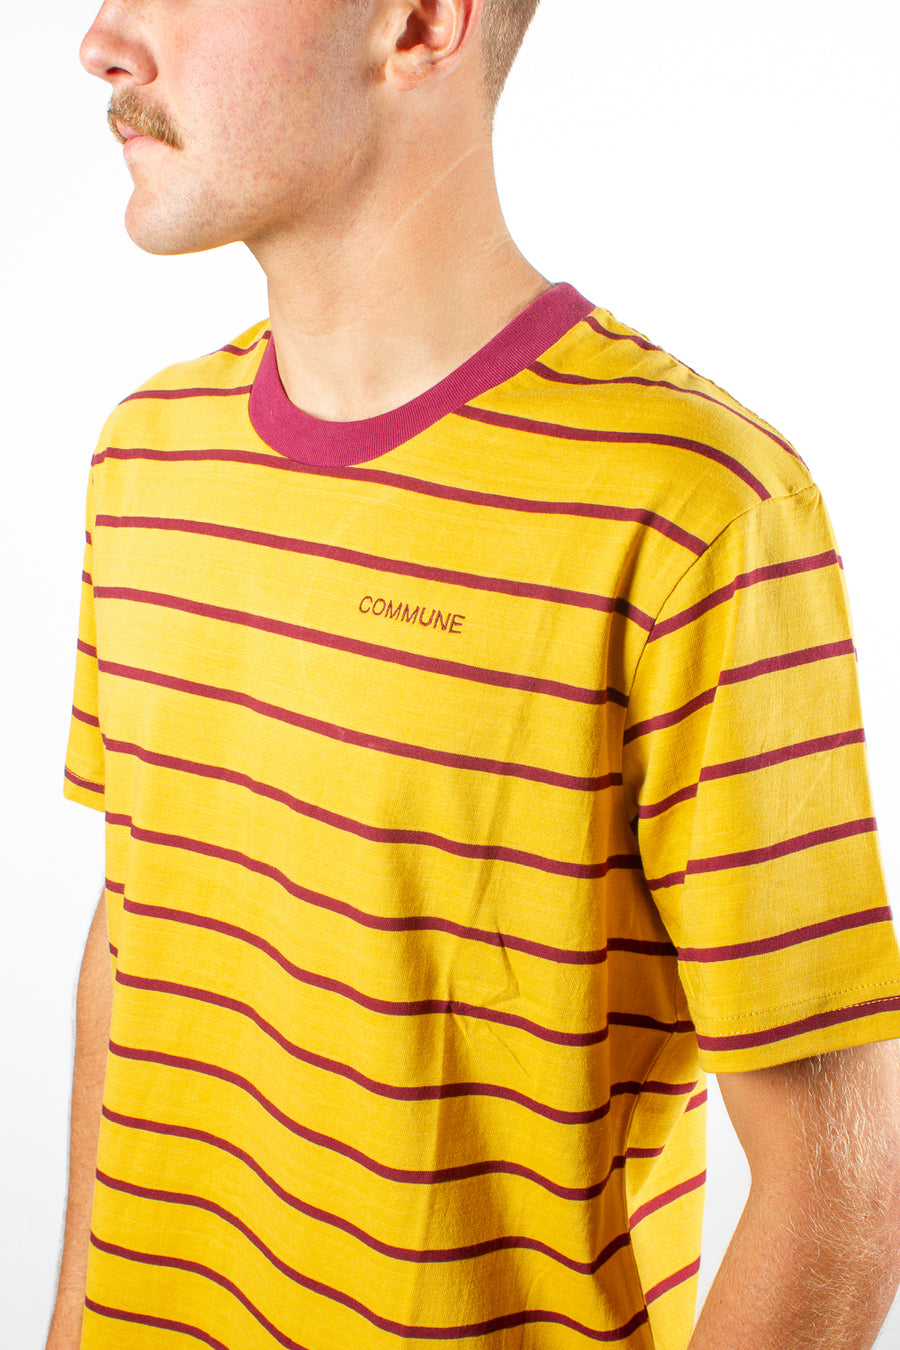 Polymer X Commune Capital Horizontal Stripe Tee Mustard